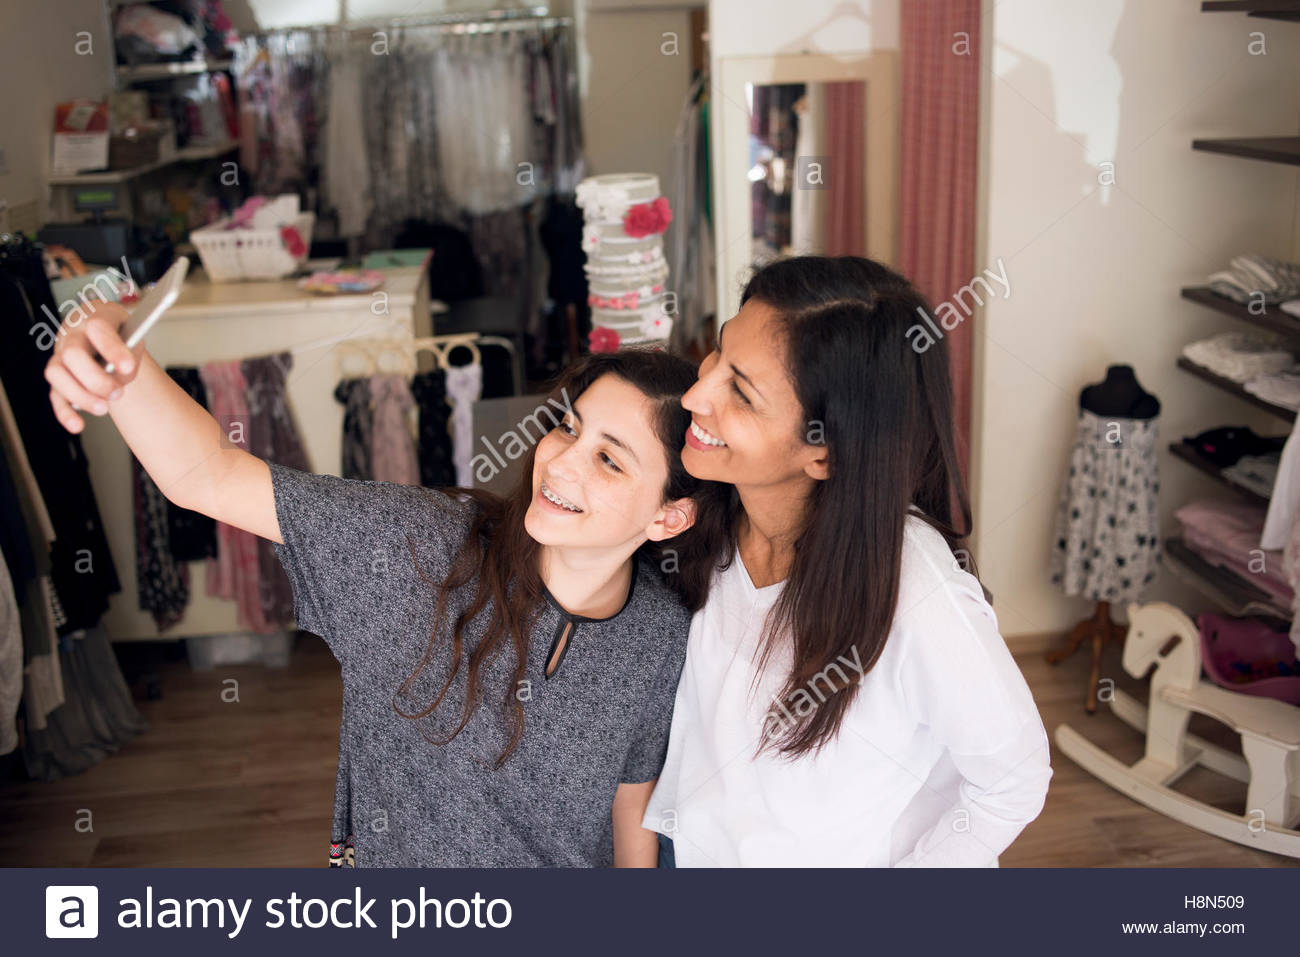 Mature woman and girl (10-11) taking selfie in clothes store - Stock Image